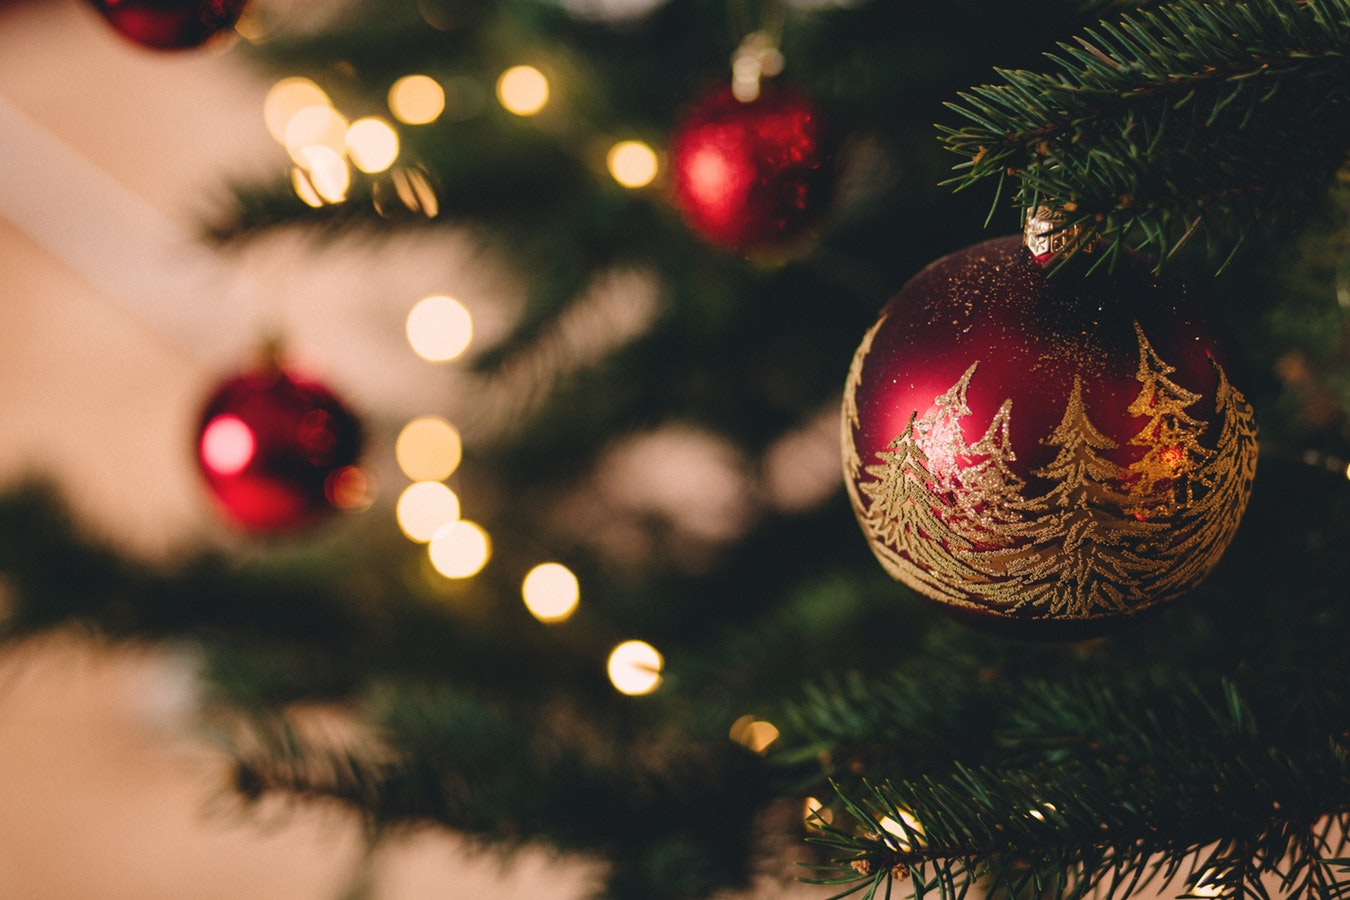 Close up with a Christmas Tree with shiny red ornaments